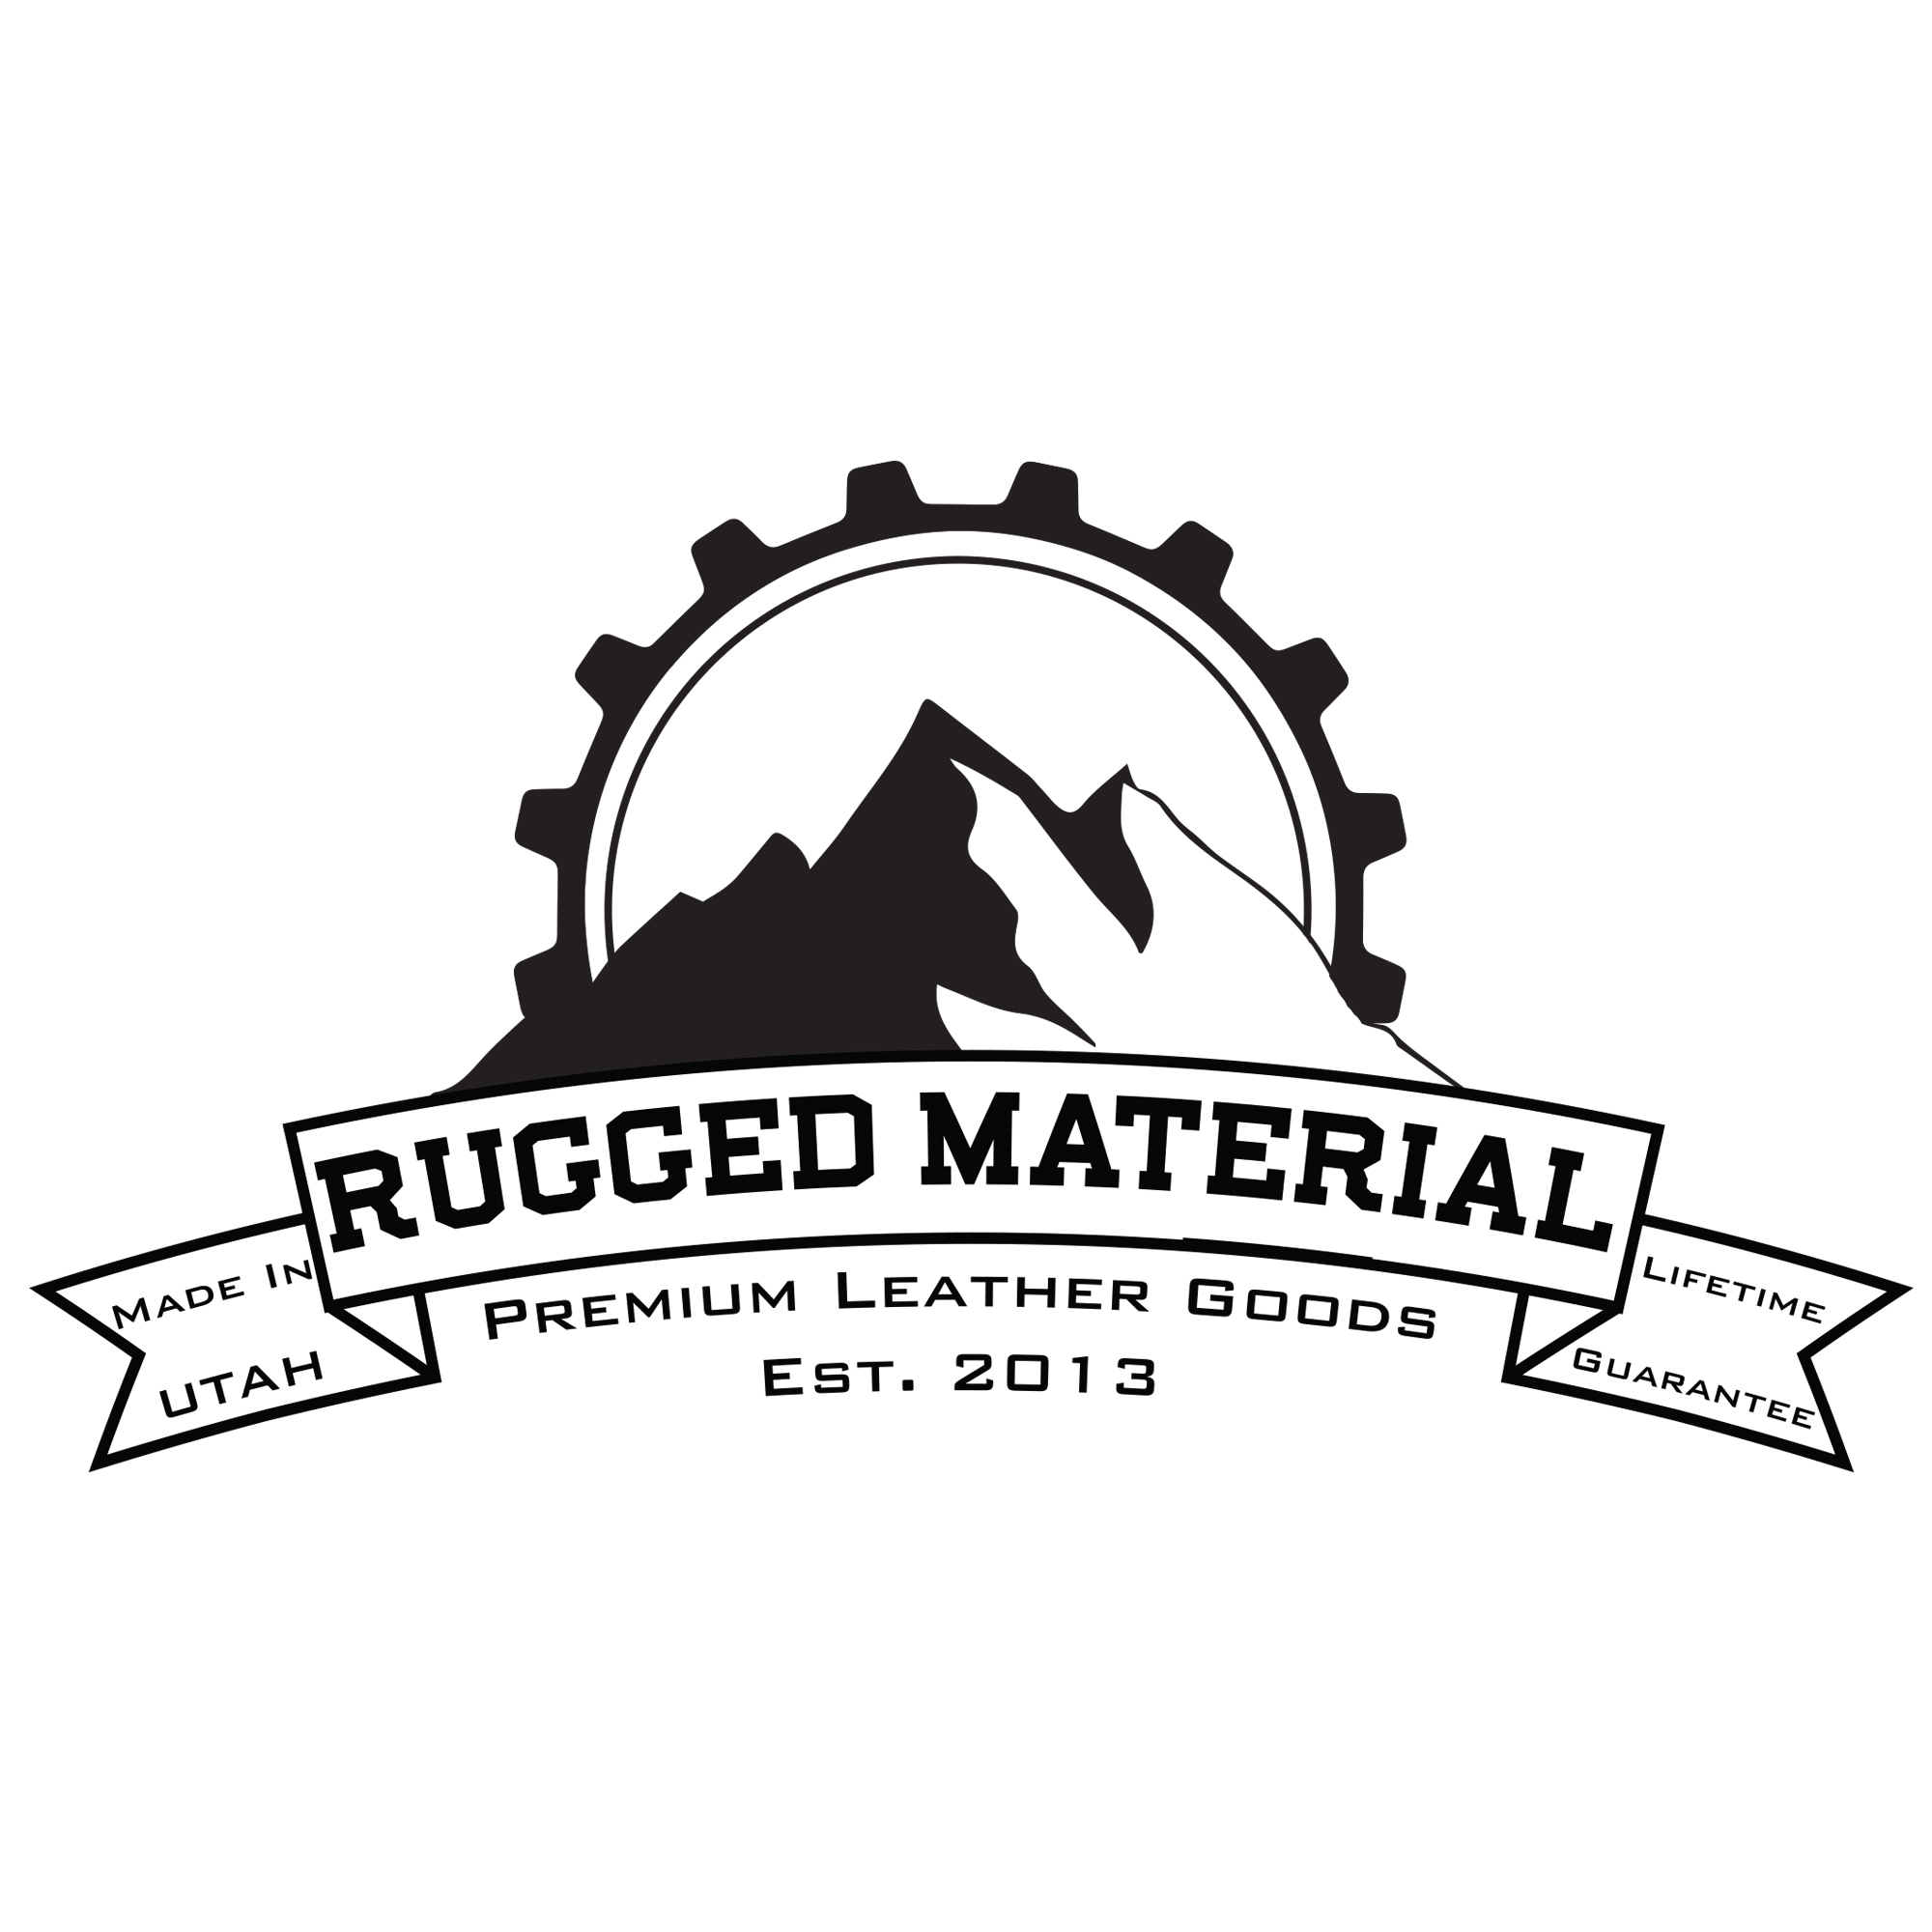 Rugged Material